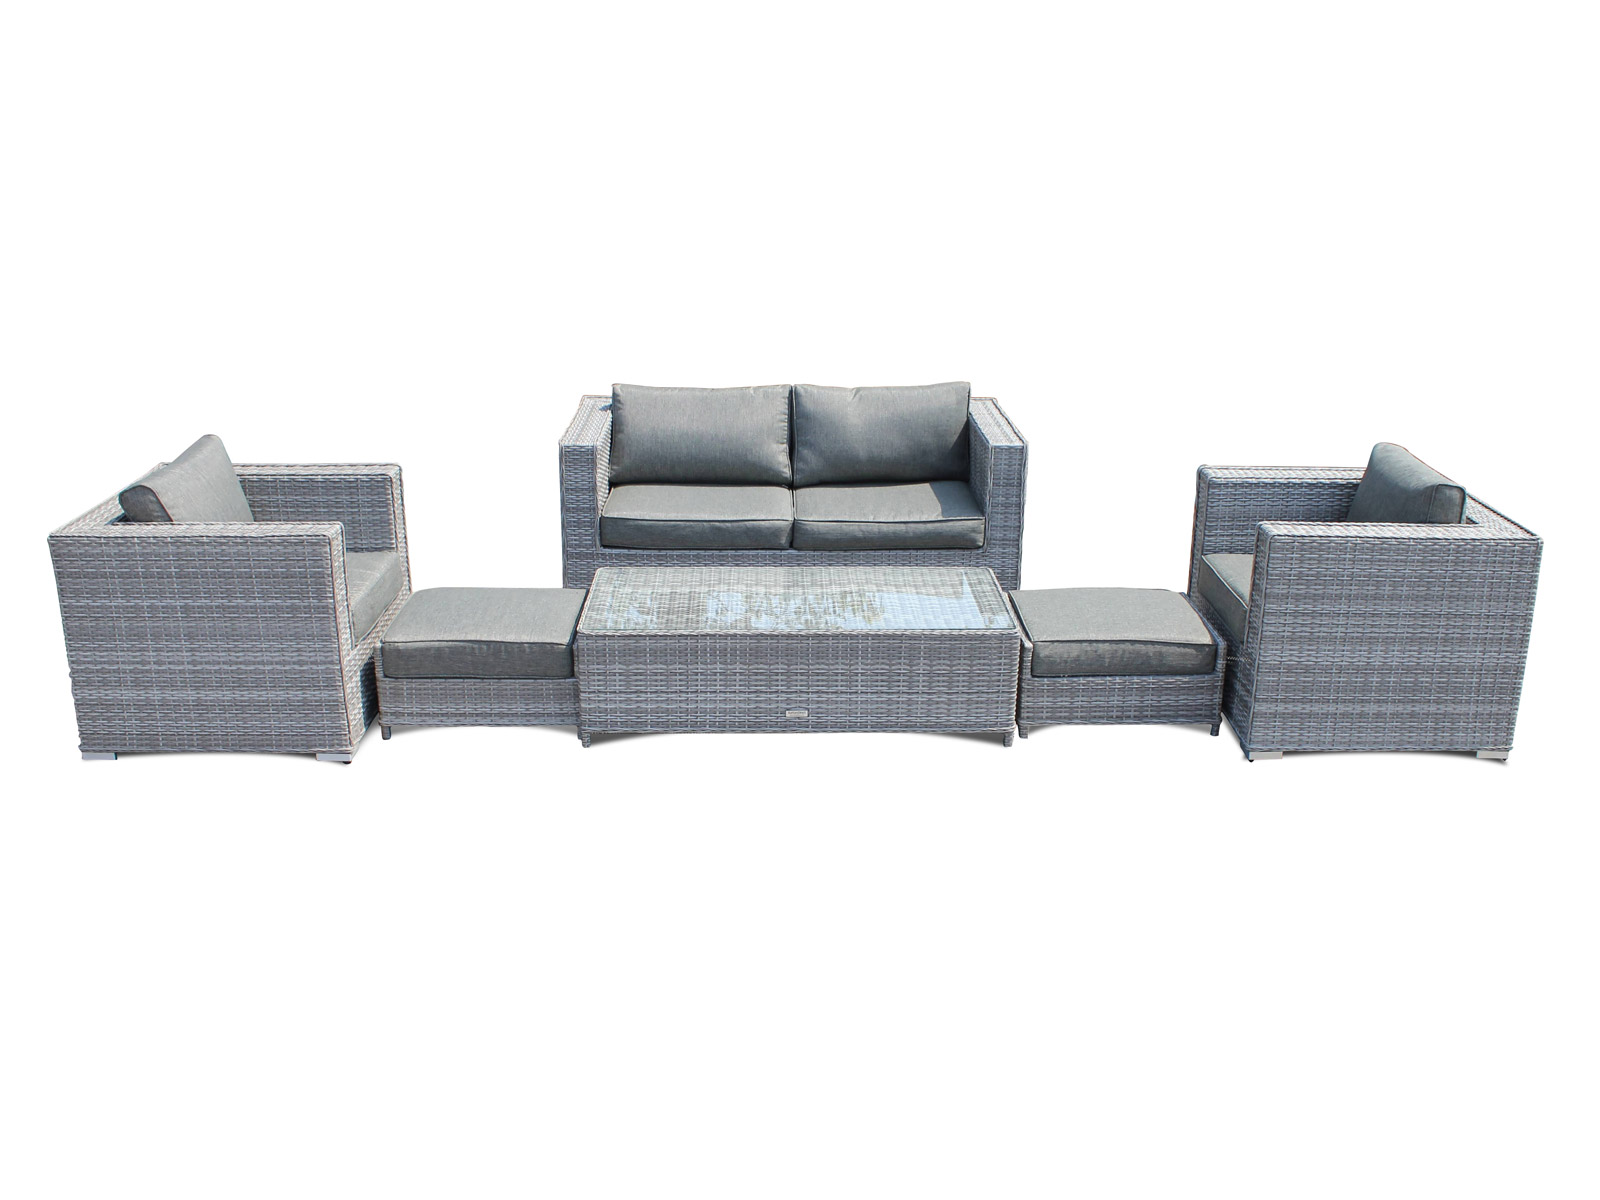 royalcraft cannes small black rattan corner sofa beds at raymour and flanigan set amazing with